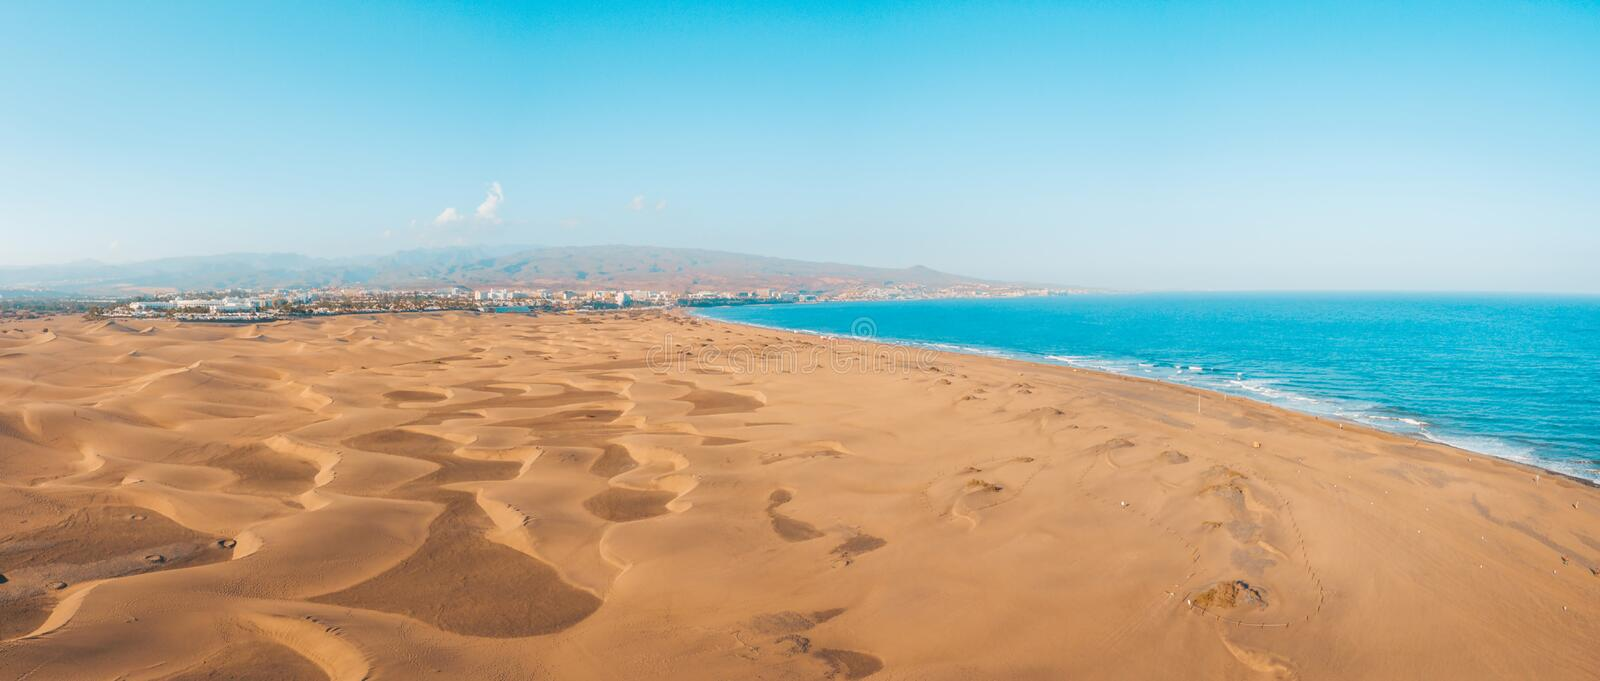 Aerial view of the Maspalomas dunes on the Gran Canaria island. stock photography